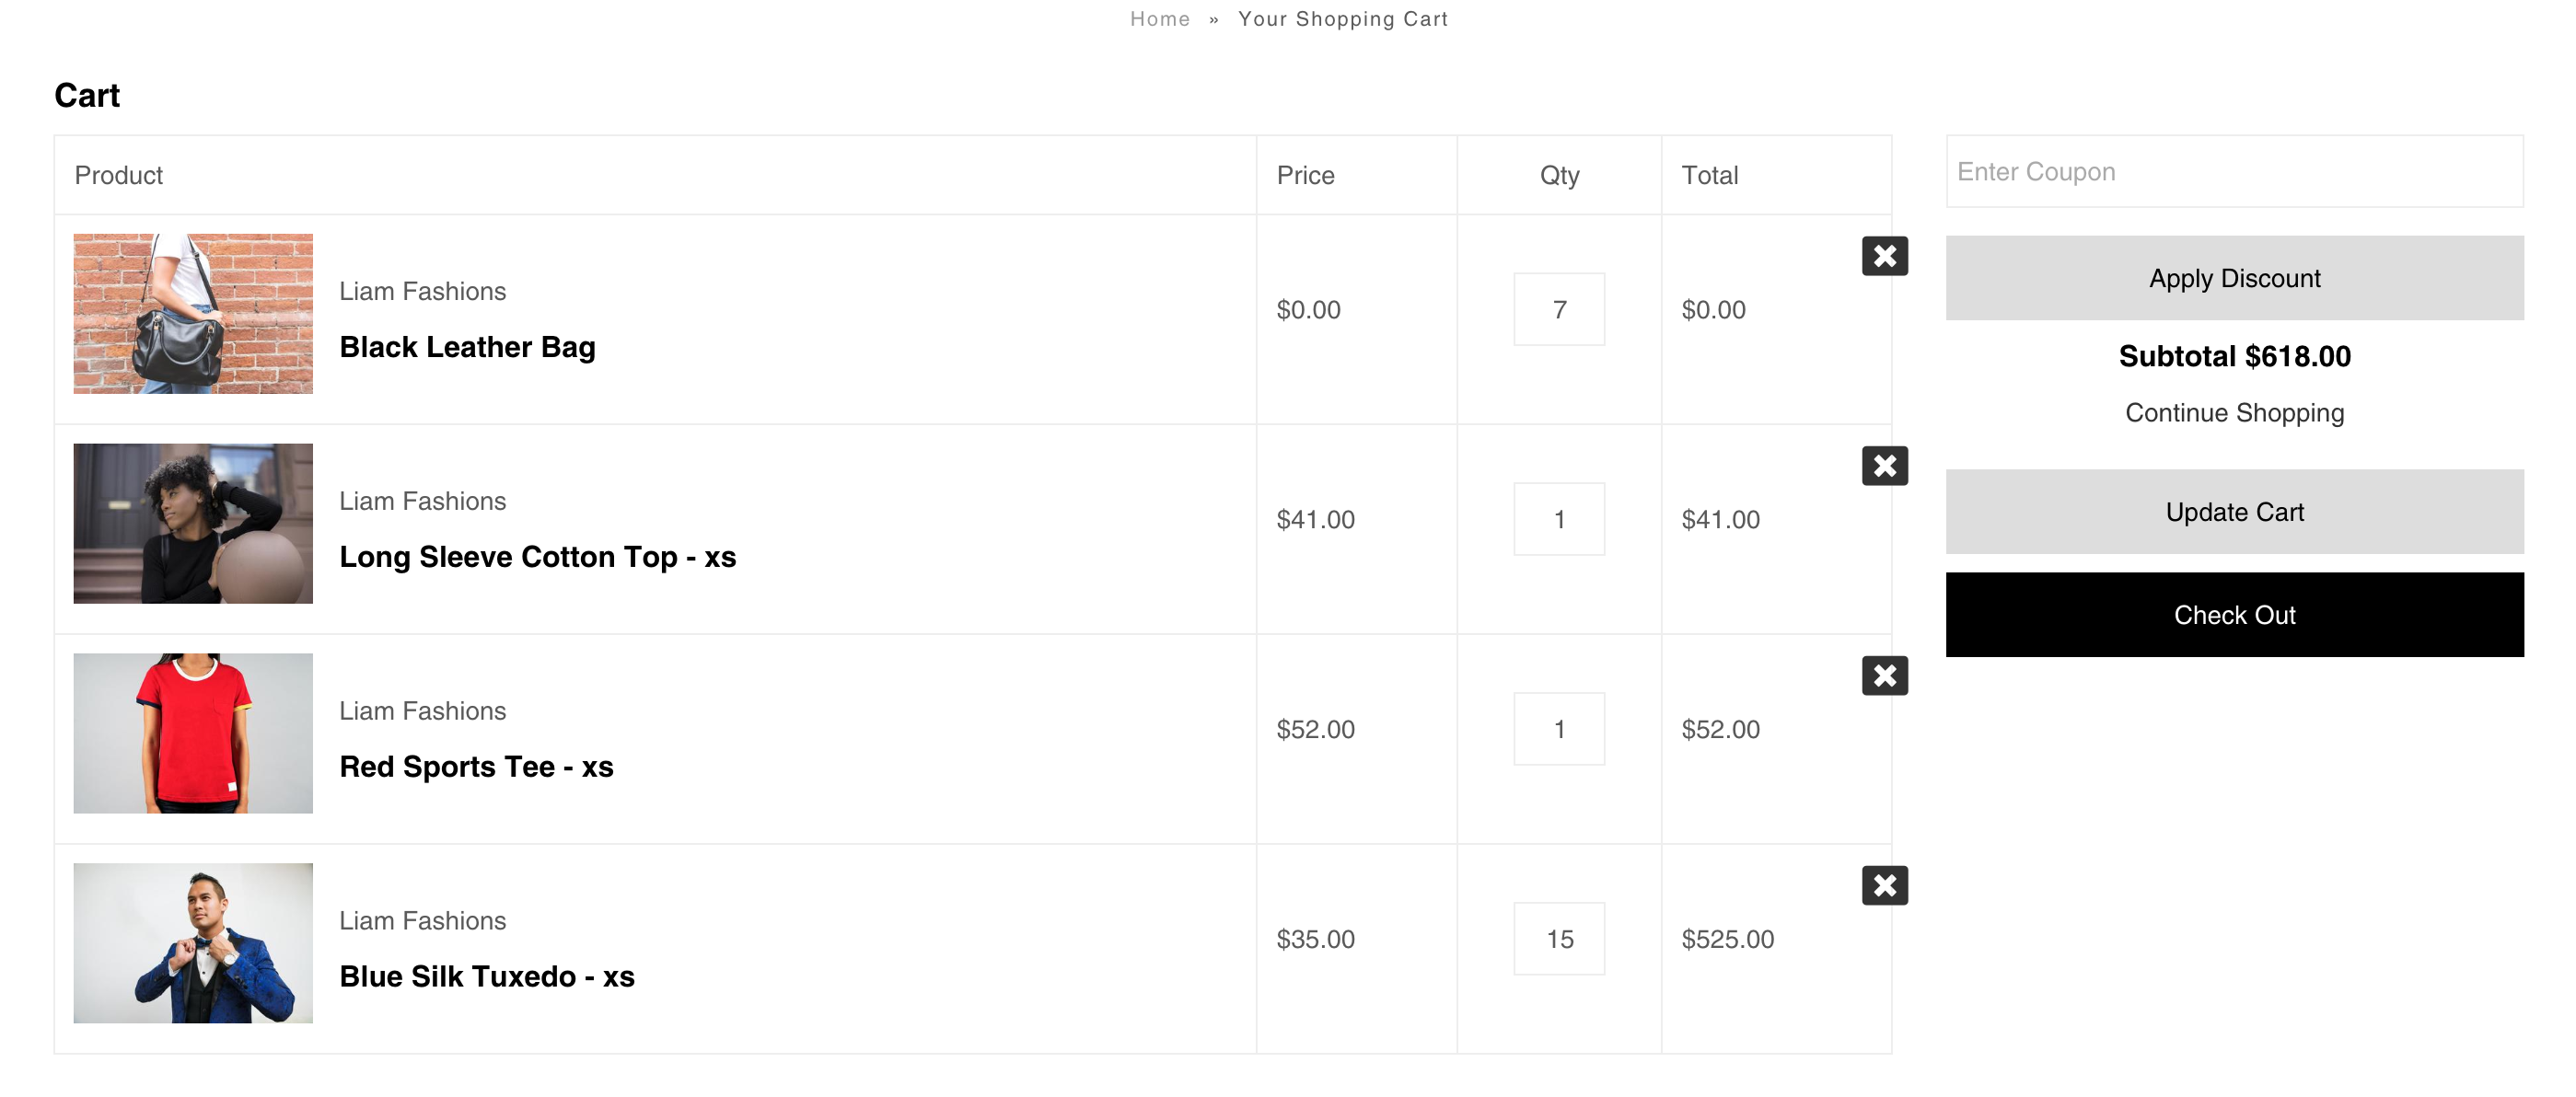 Vantage theme for Shopify - carter coupon field in cart